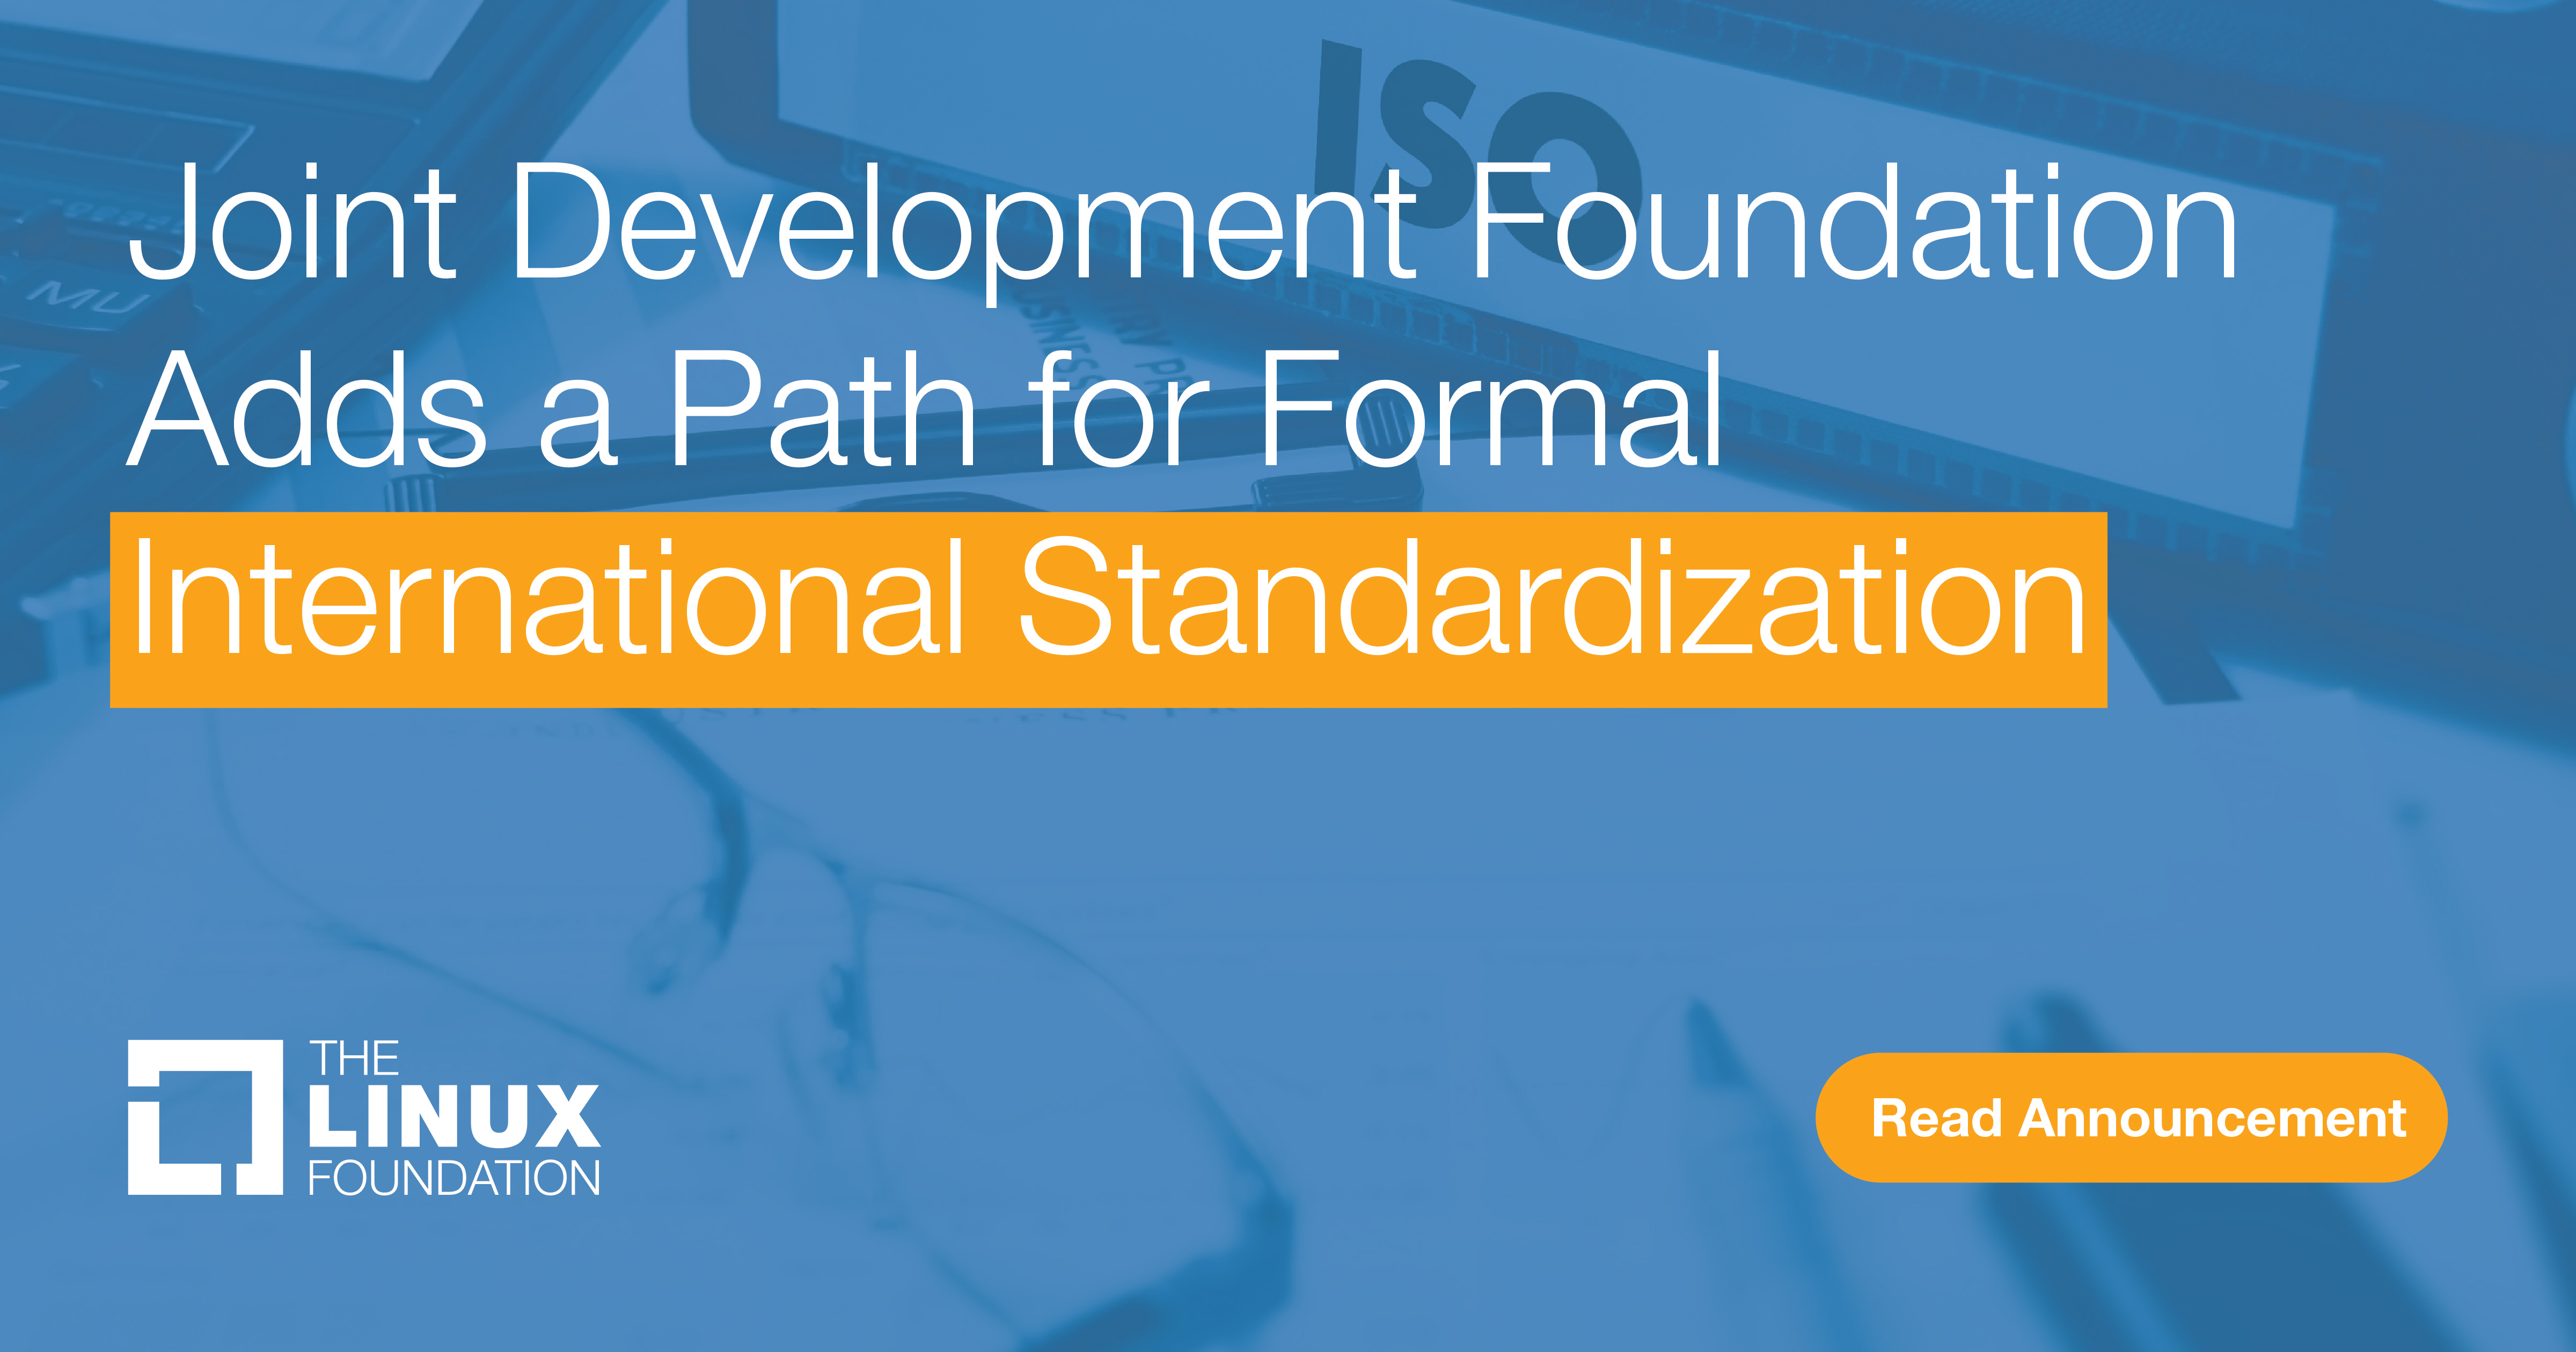 Joint Development Foundation Adds a Path for Formal International Standardization